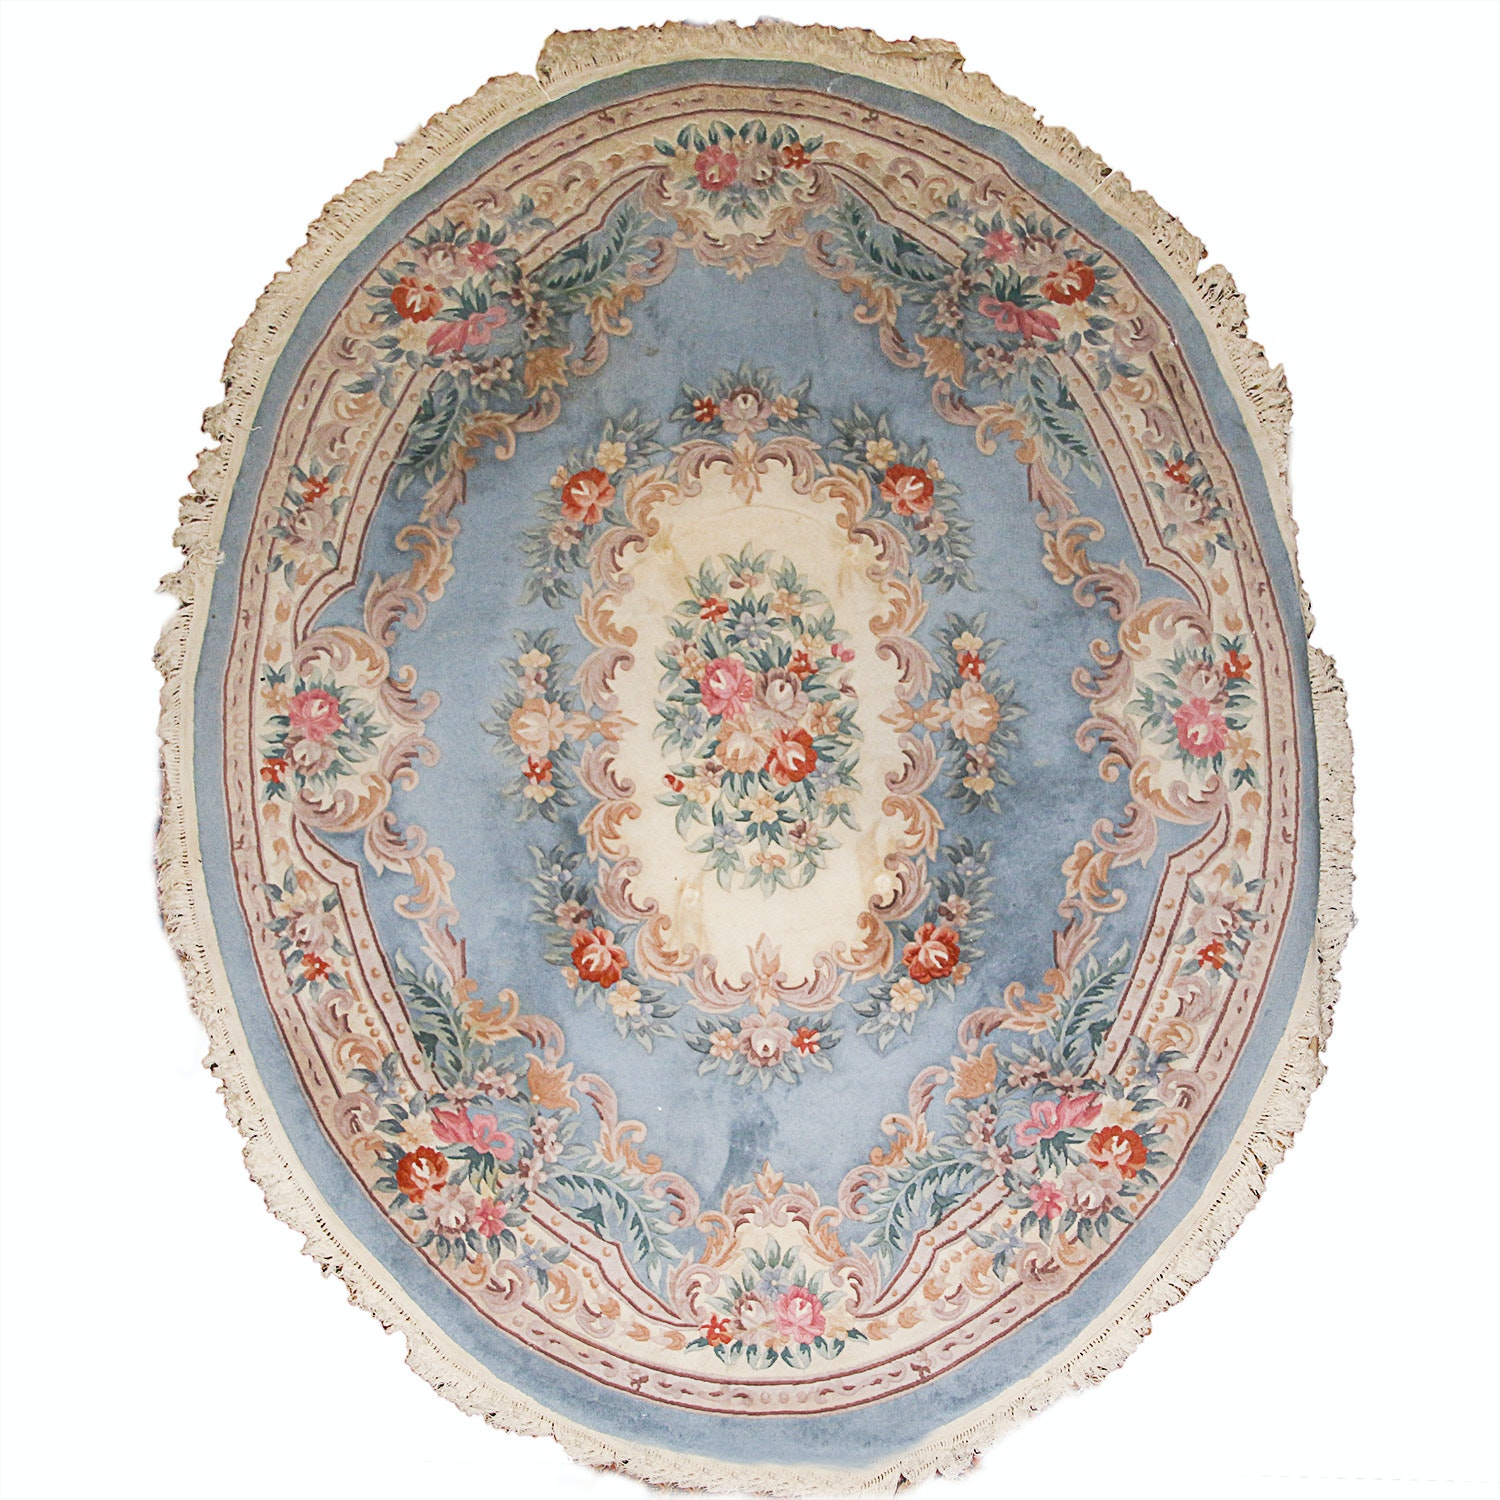 Hand-Knotted Chinese Savonnerie-Style Oval Rug